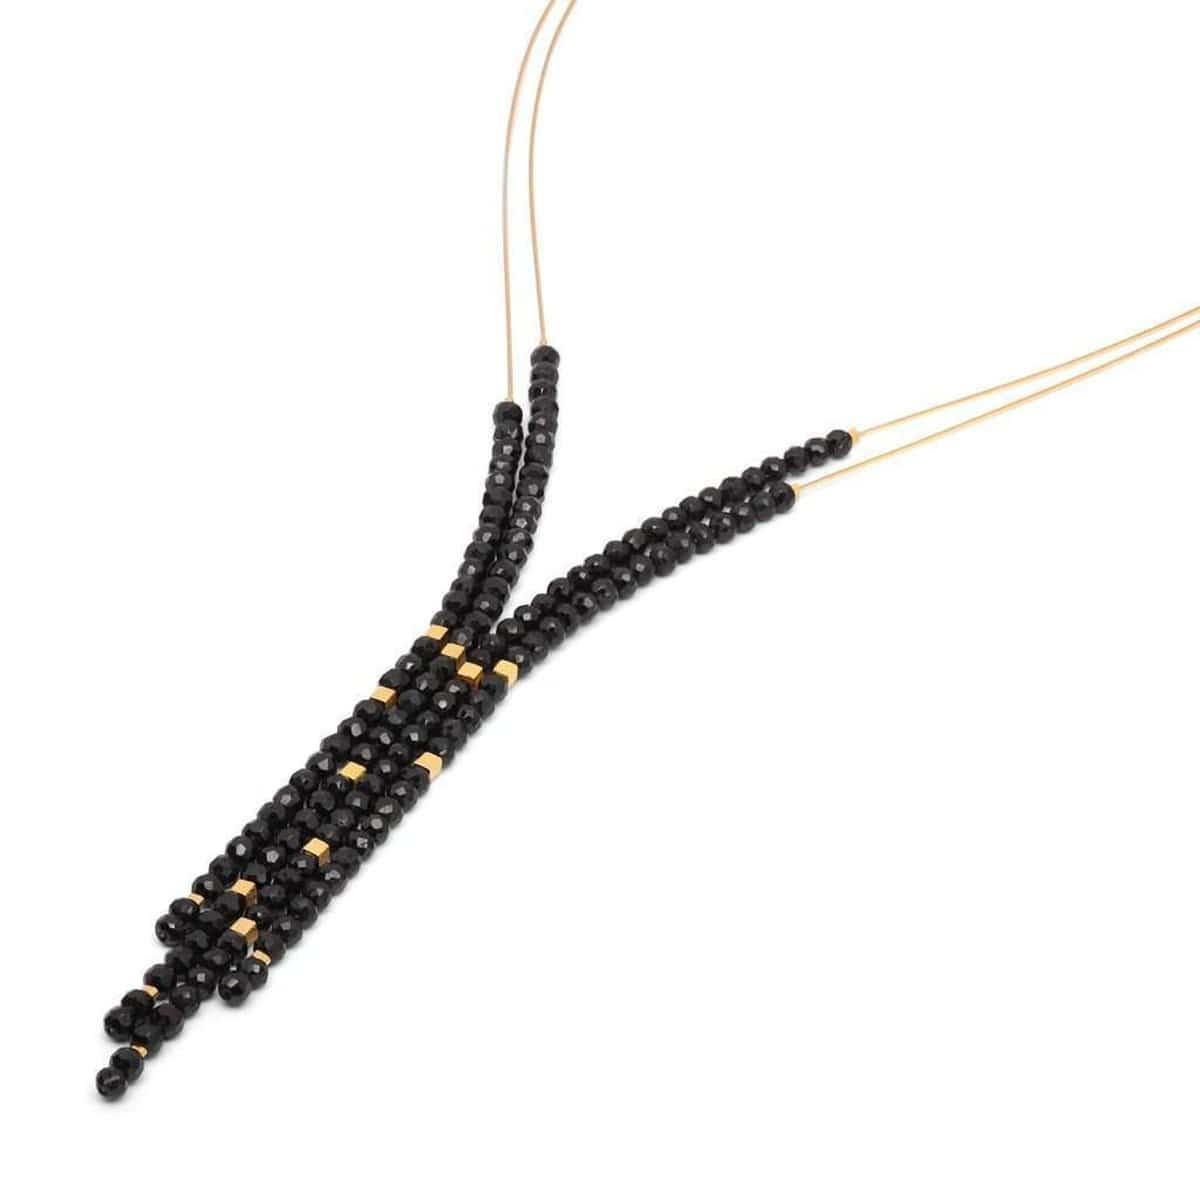 Yanessa Black Spinel Necklace - 85605496-Bernd Wolf-Renee Taylor Gallery